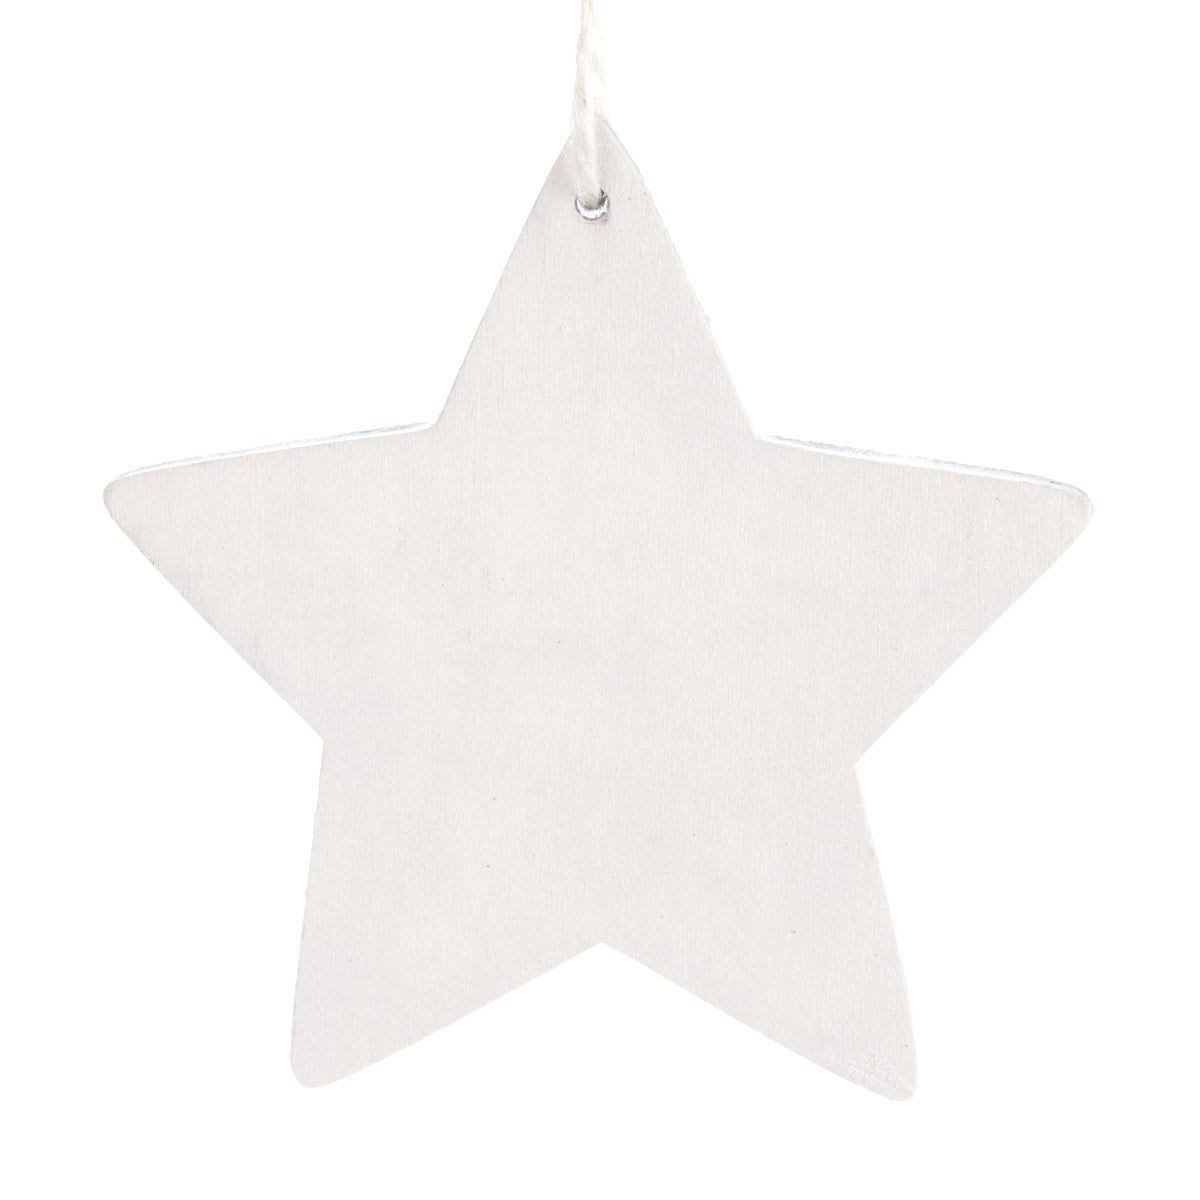 Decorative star made of wood, 11 cm. In white wash. Also available as openwork star and in grey wash.